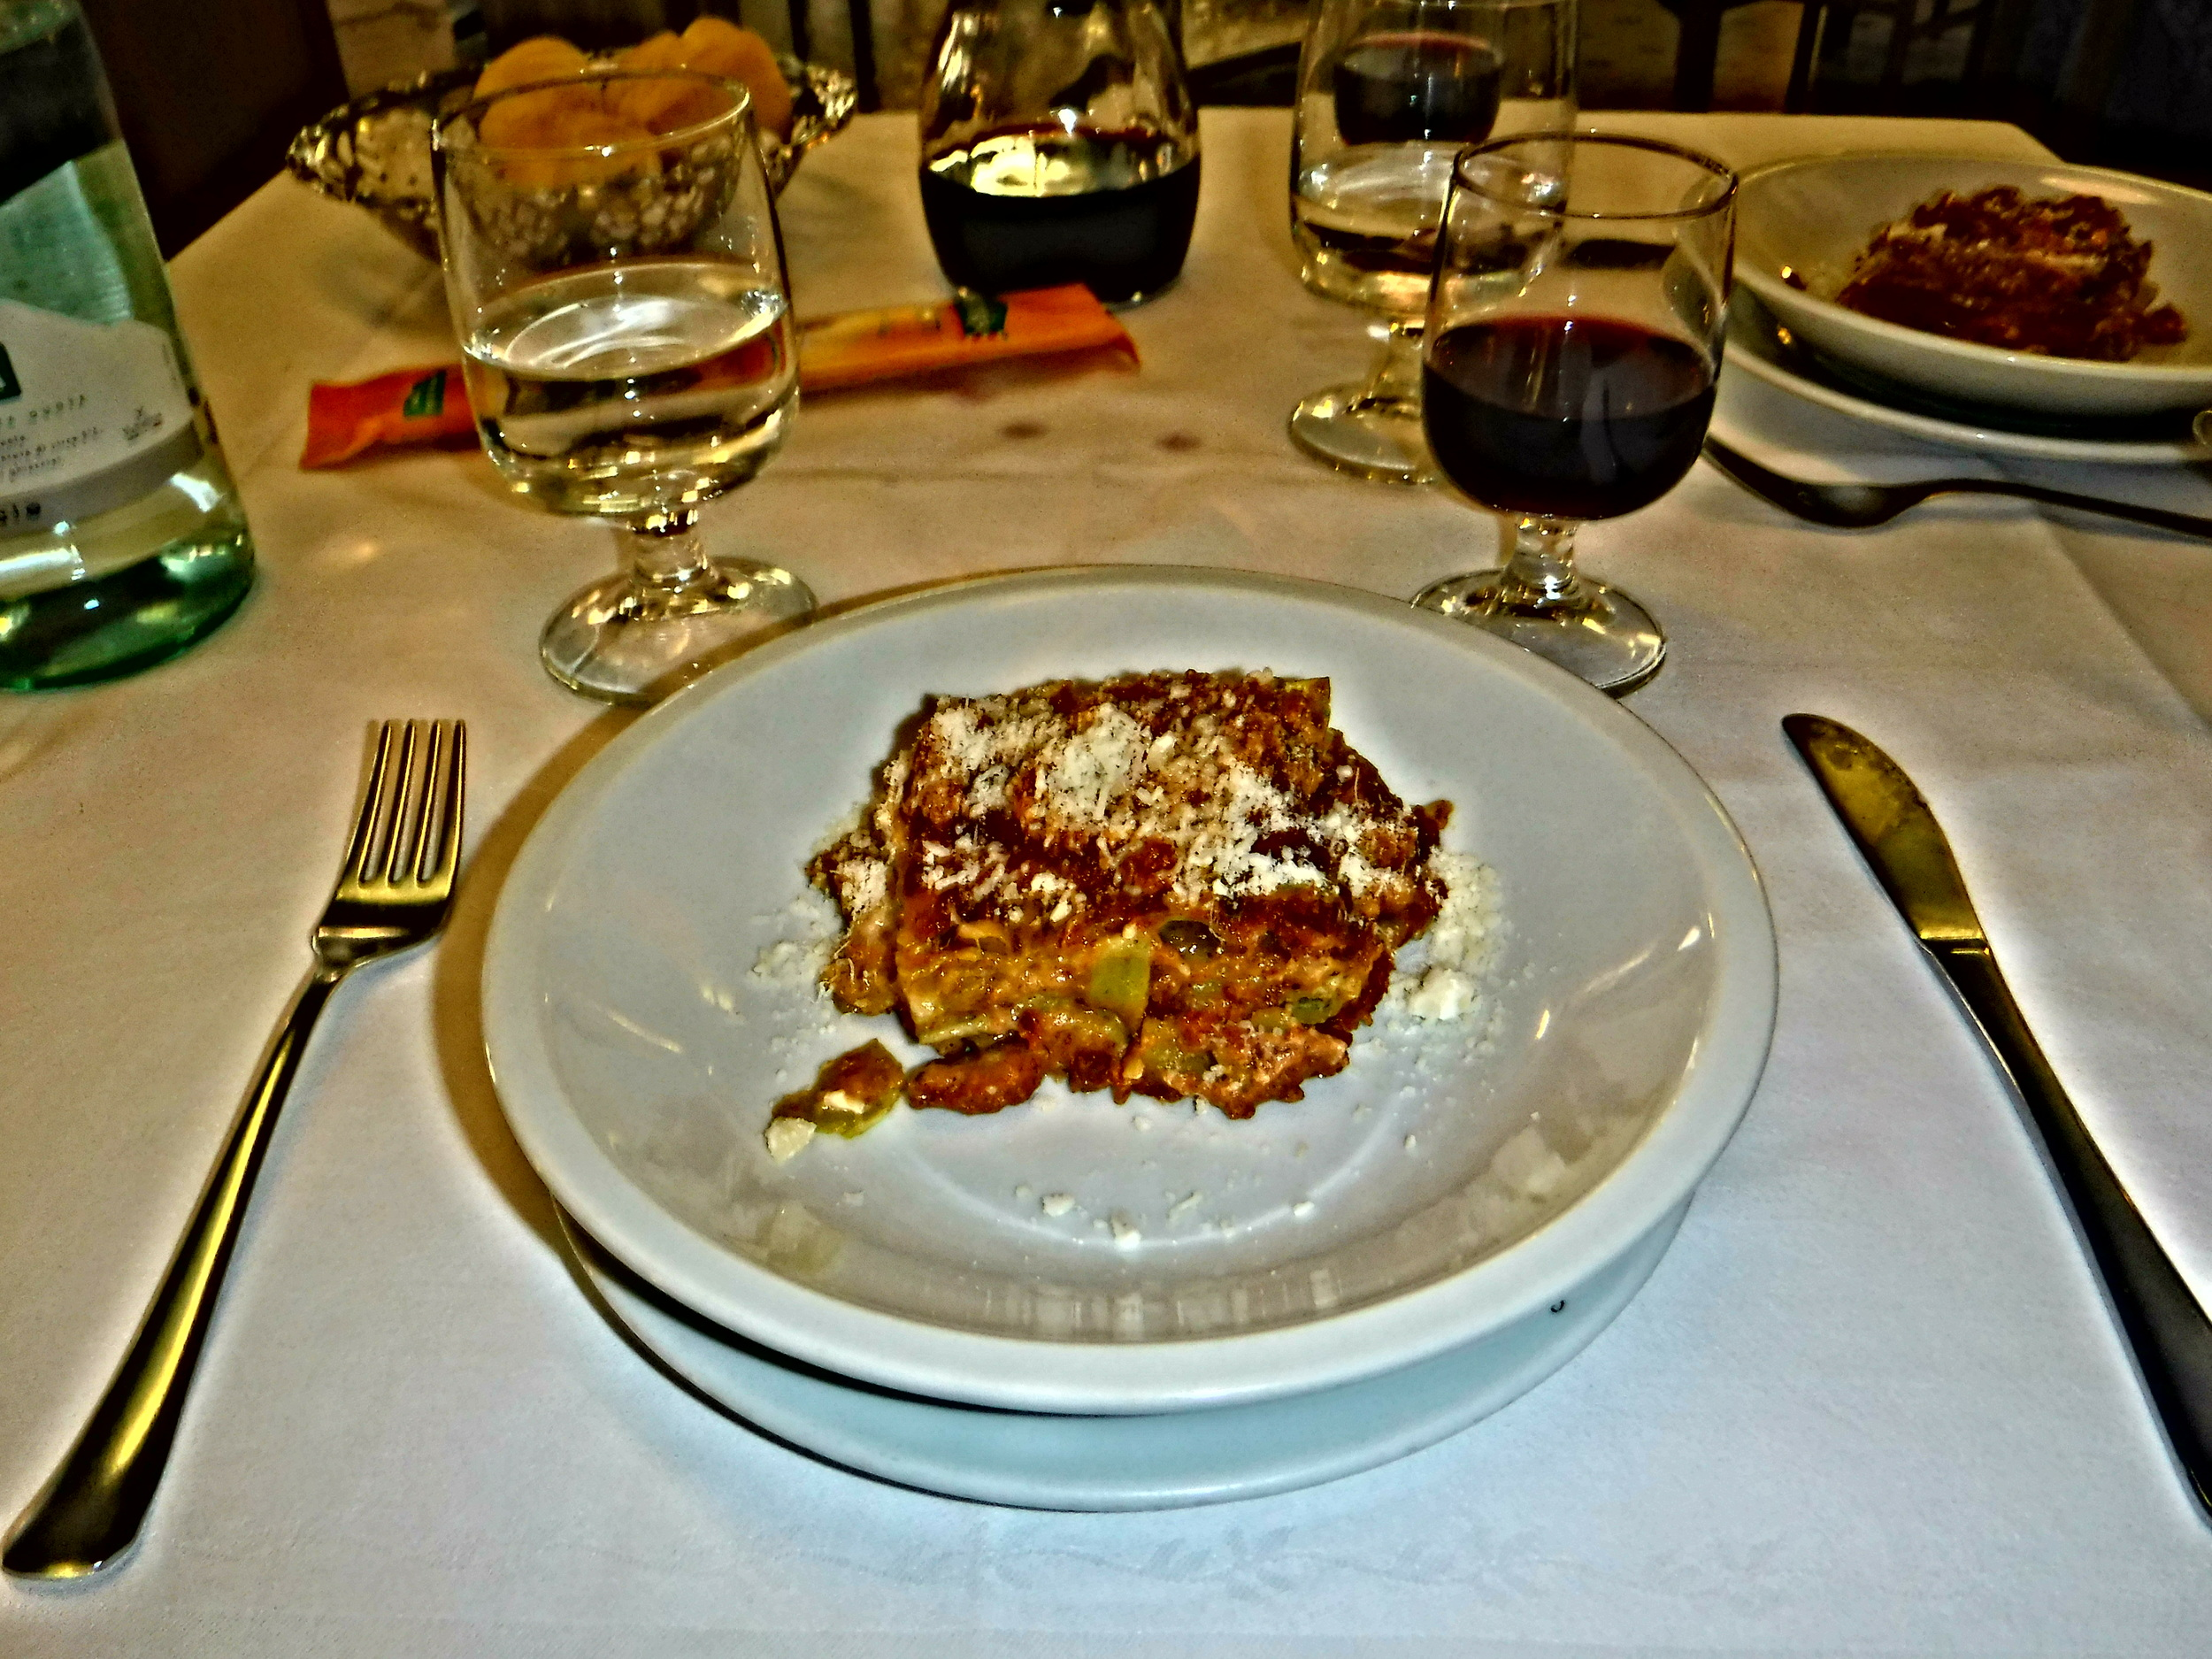 7. 1st course of delicate lasagne verdi-spinach flavored pasta with meat ragout & béchamel sauce.JPG